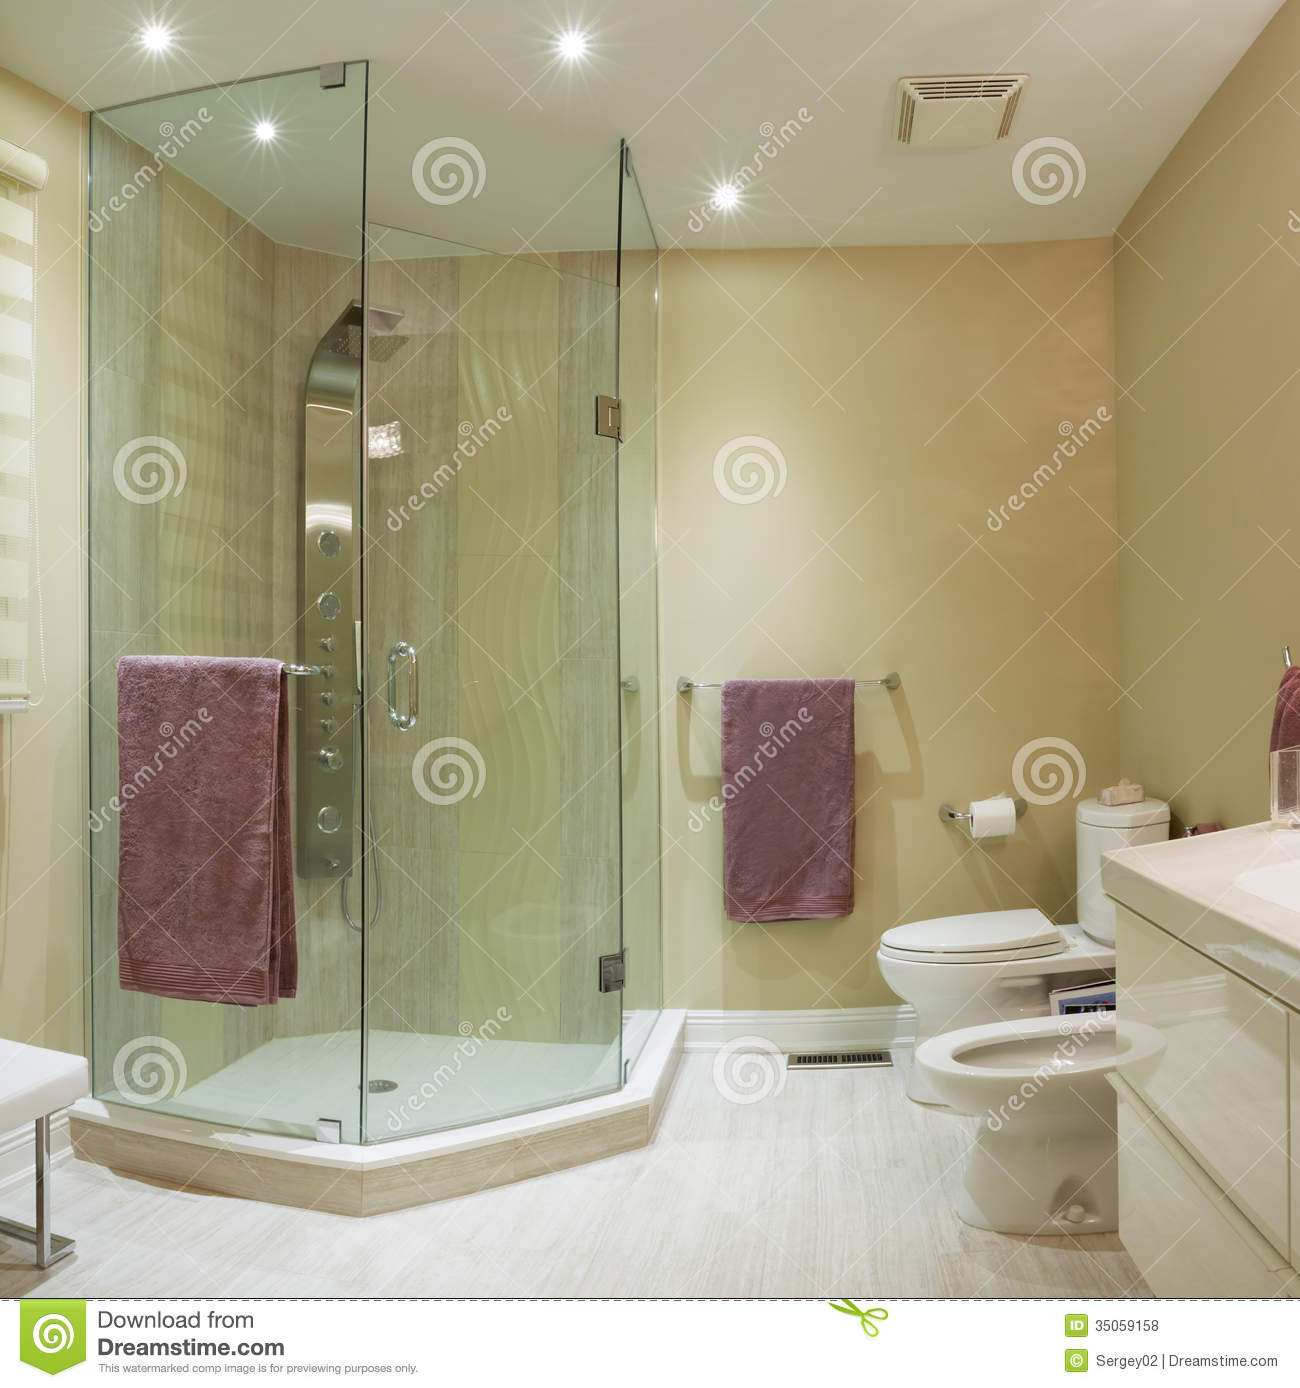 Interior design royalty free stock photos image 35059158 for New home bathroom ideas